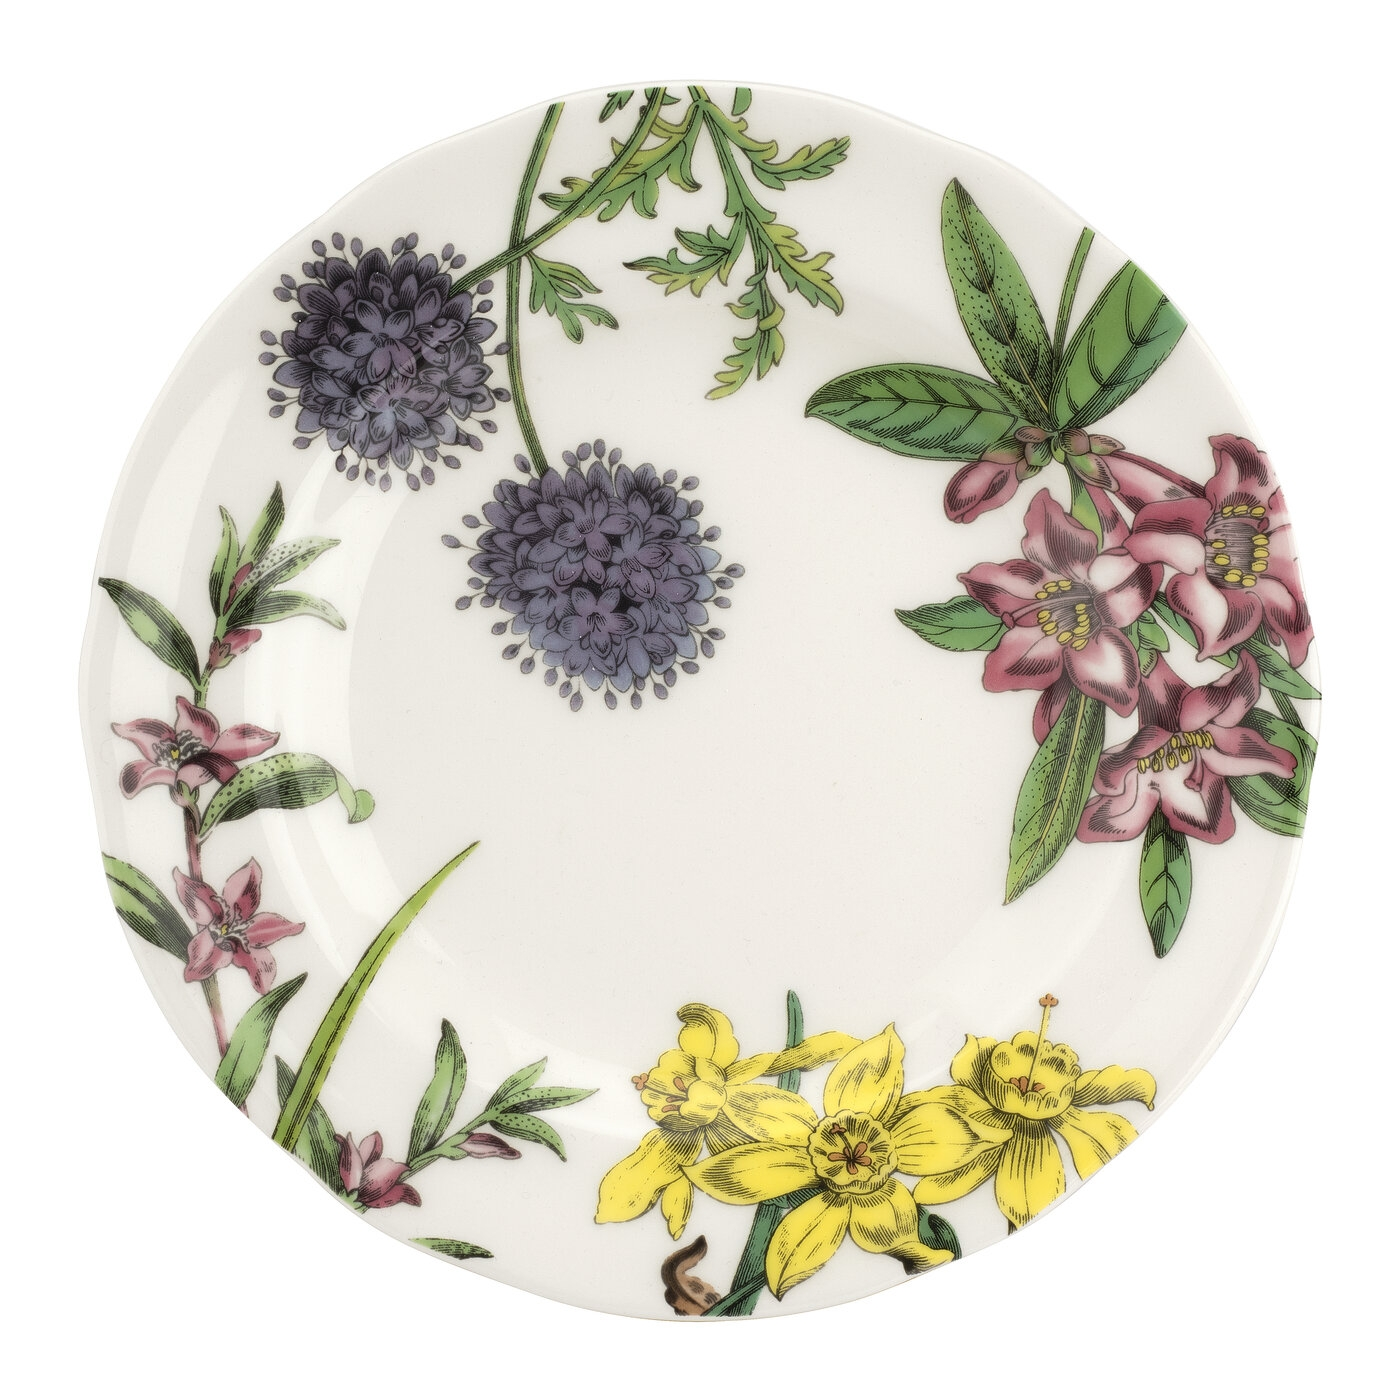 Spode Stafford Blooms 7.5 Inch Salad Plate image number 0